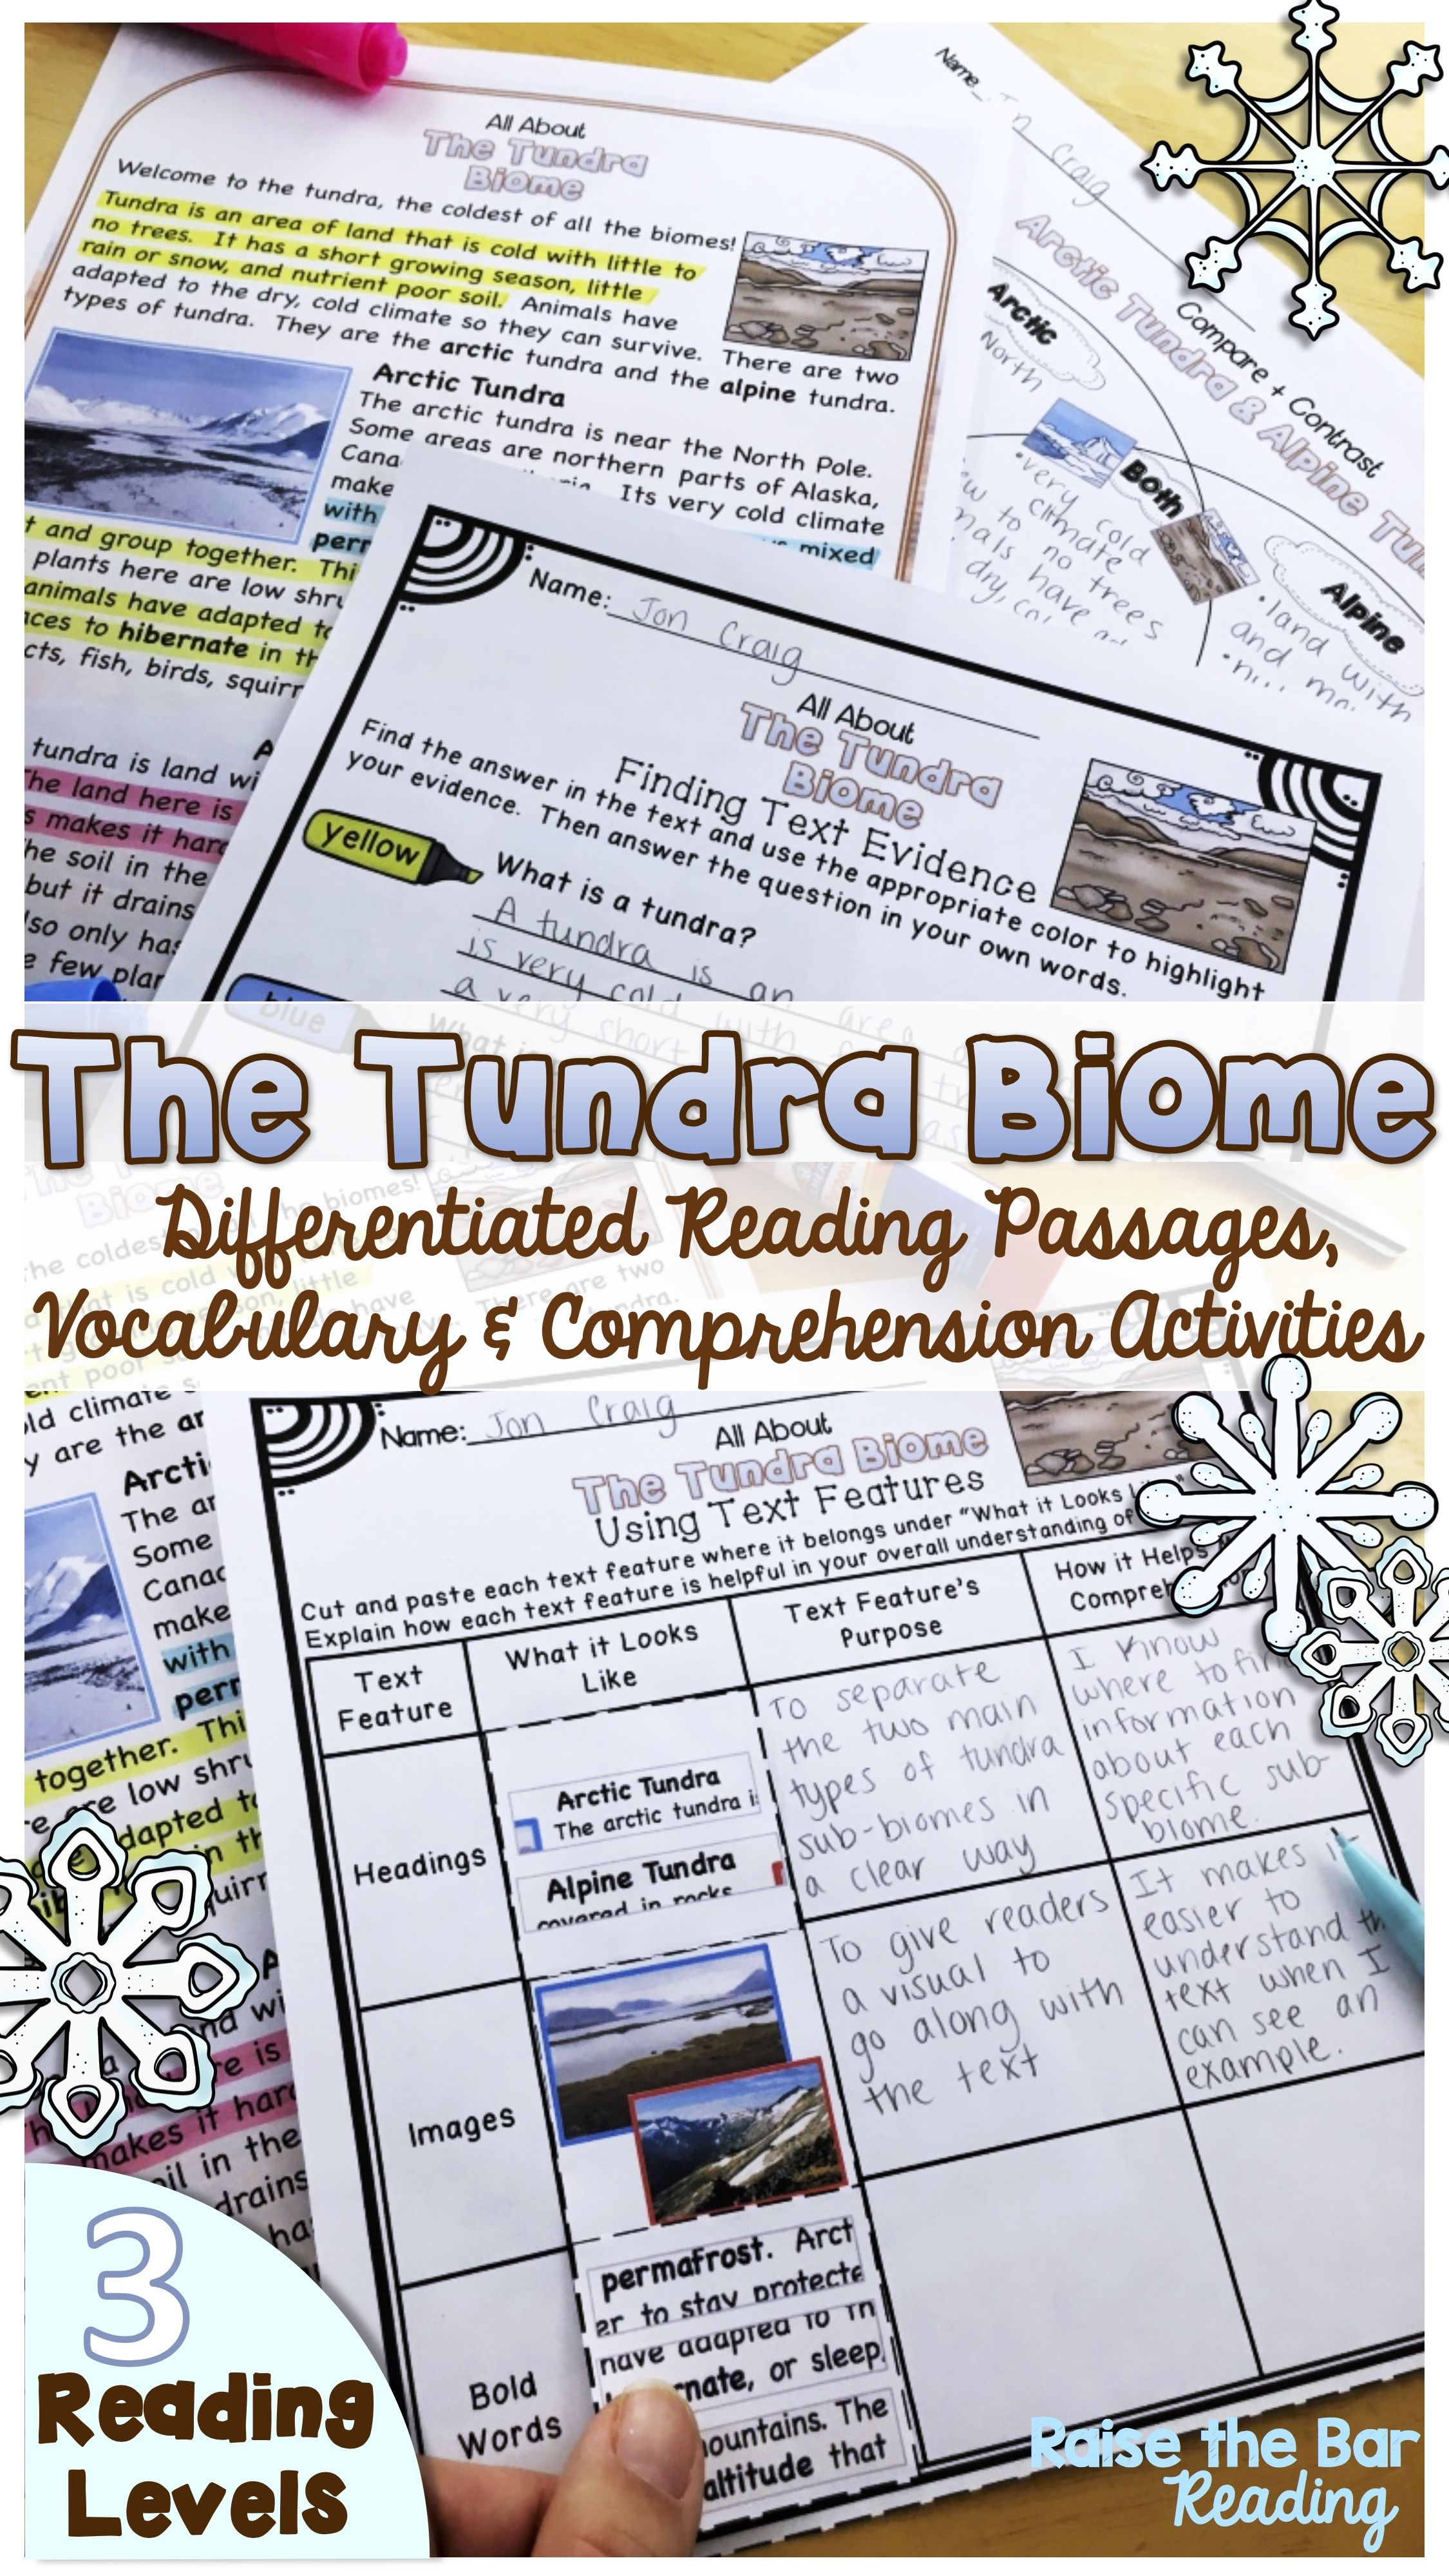 Biomes The Tundra Reading Passages 3 Levels Vocabulary Amp Comprehension